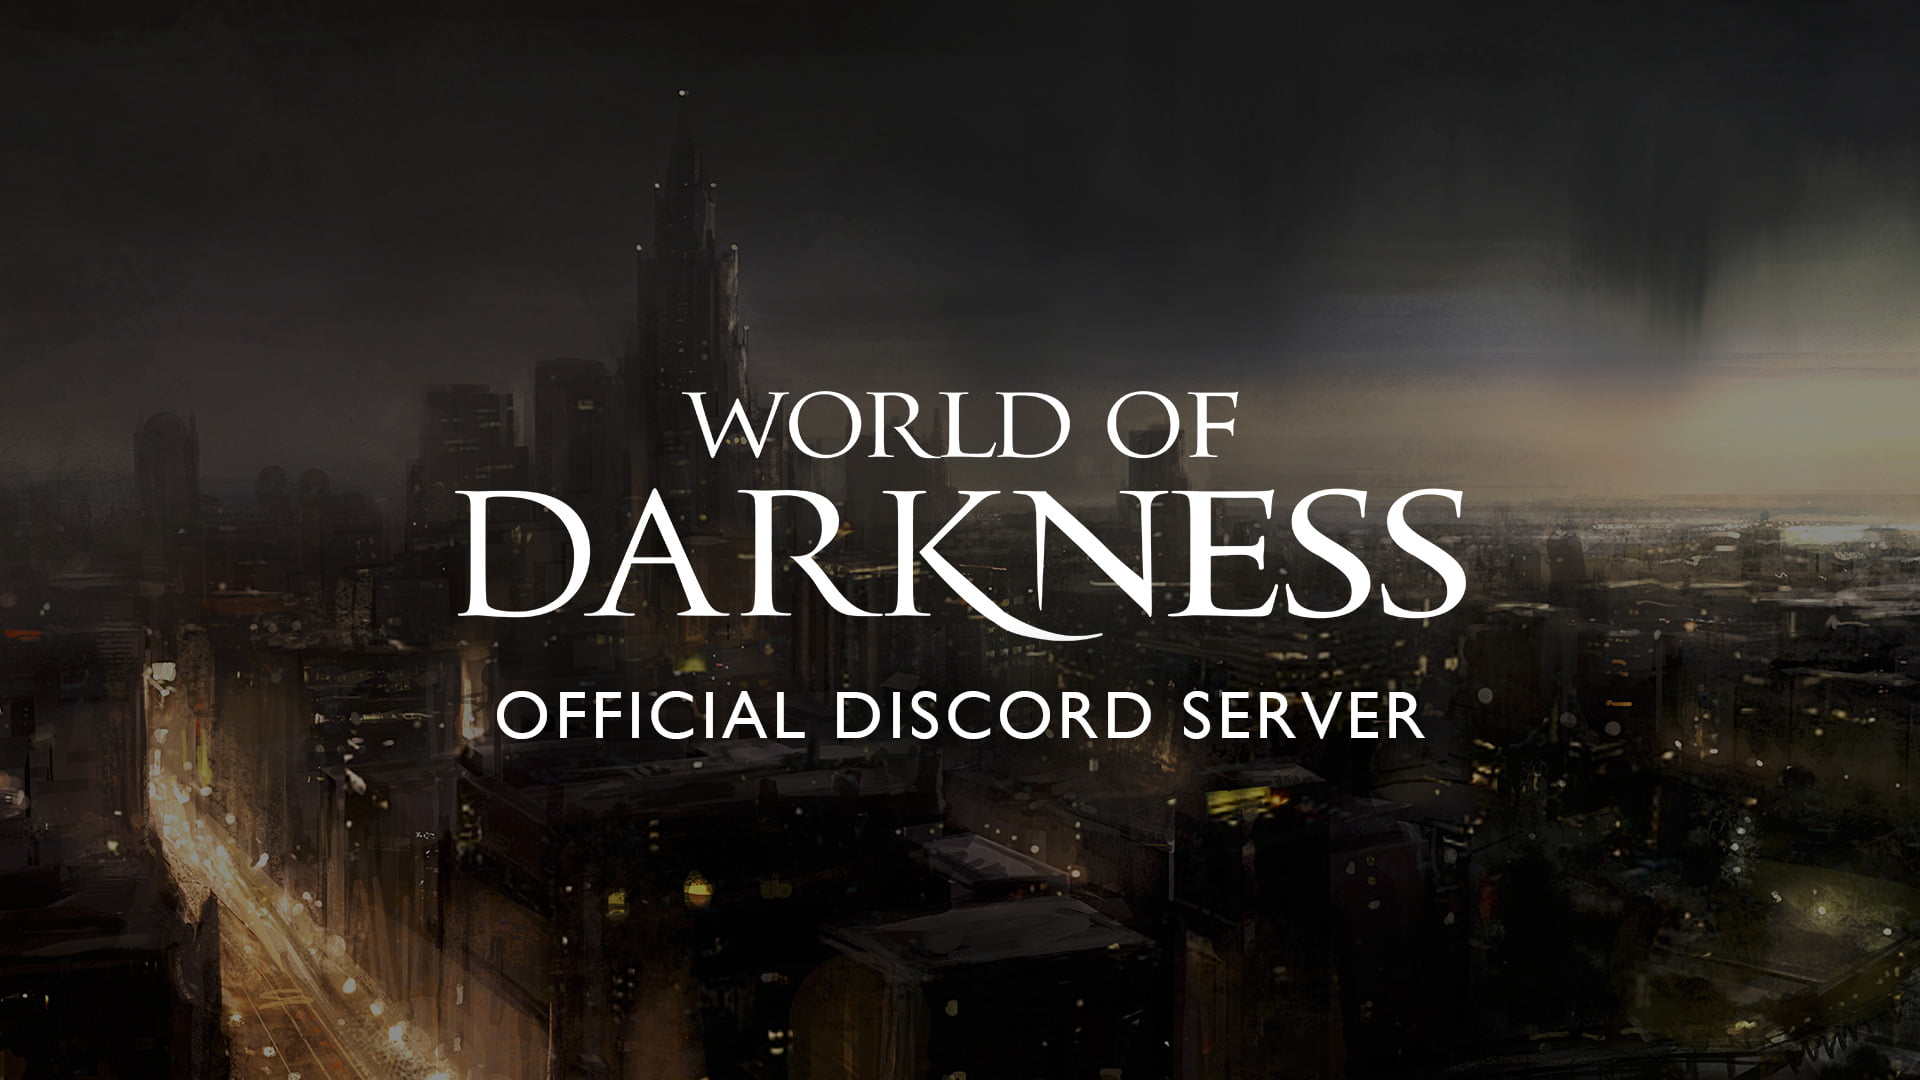 World of Darkness - Official Discord Server